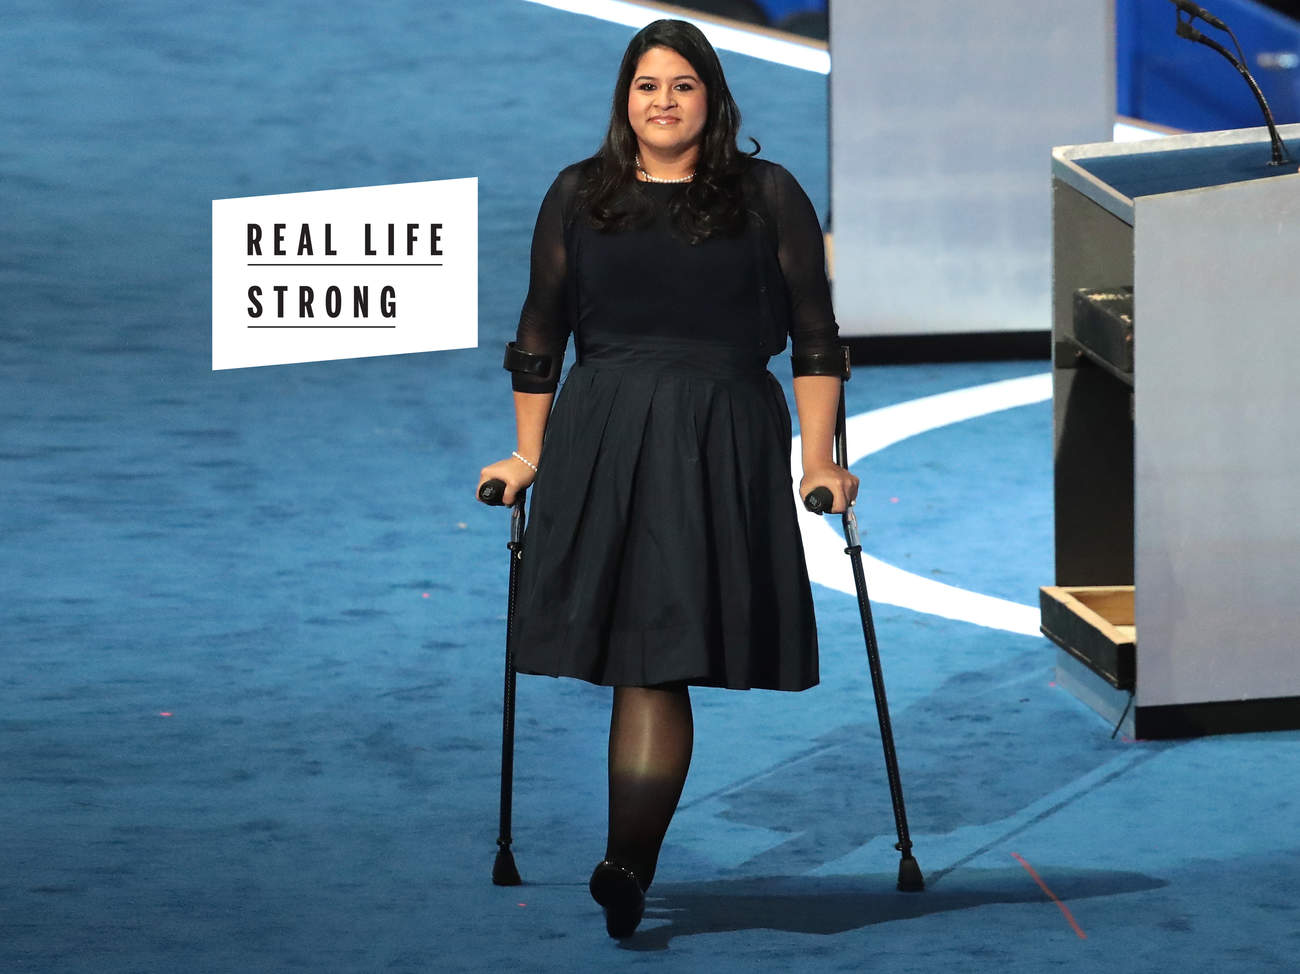 lorella-praeli-real-life-strong